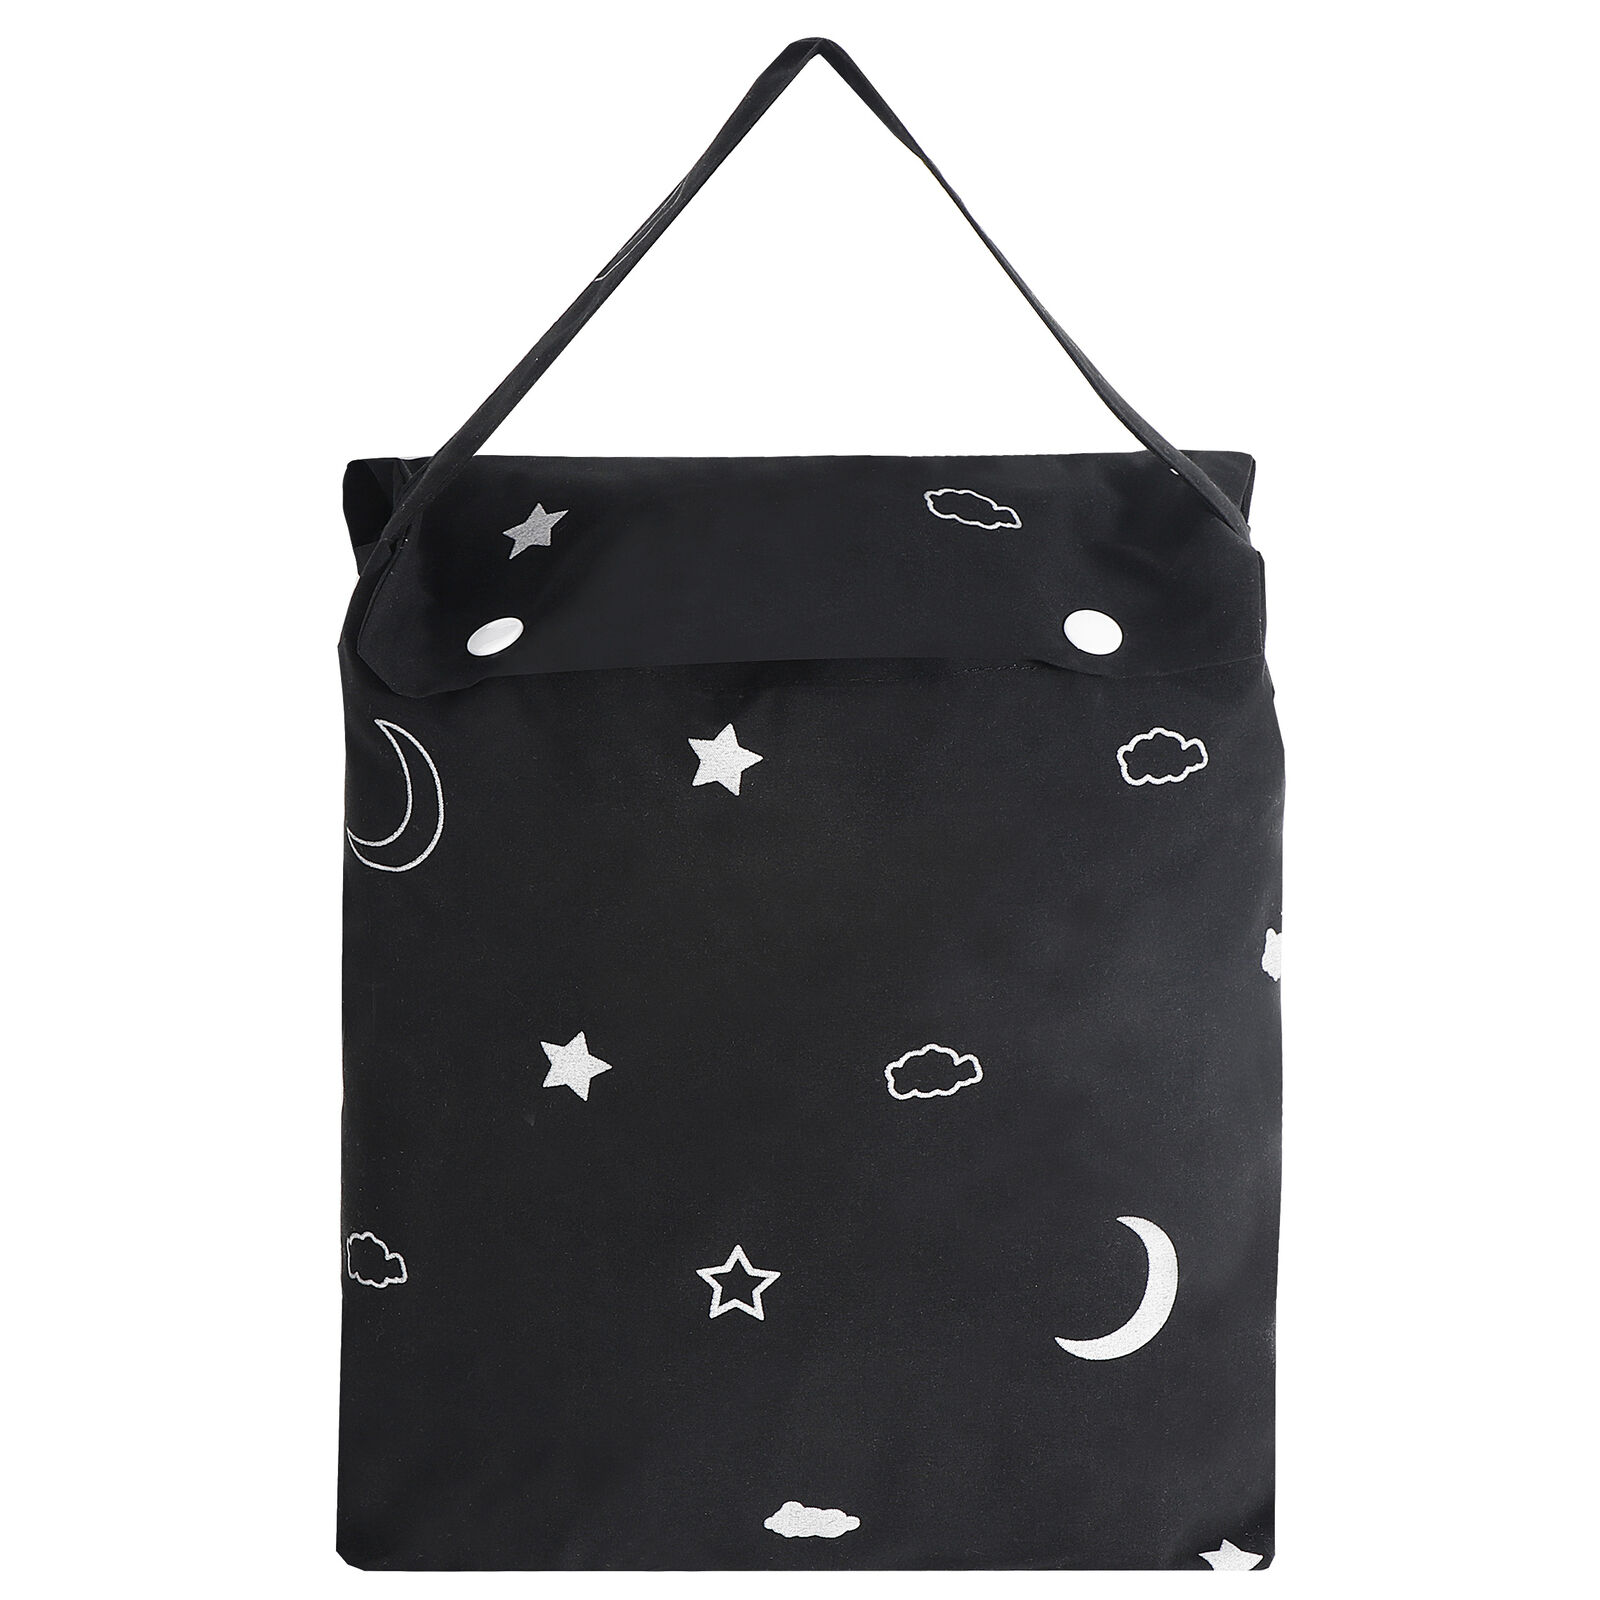 Portable Travel Baby Blackout Blind,Star and Moon Black with Suction Cups Curtains & Drapes